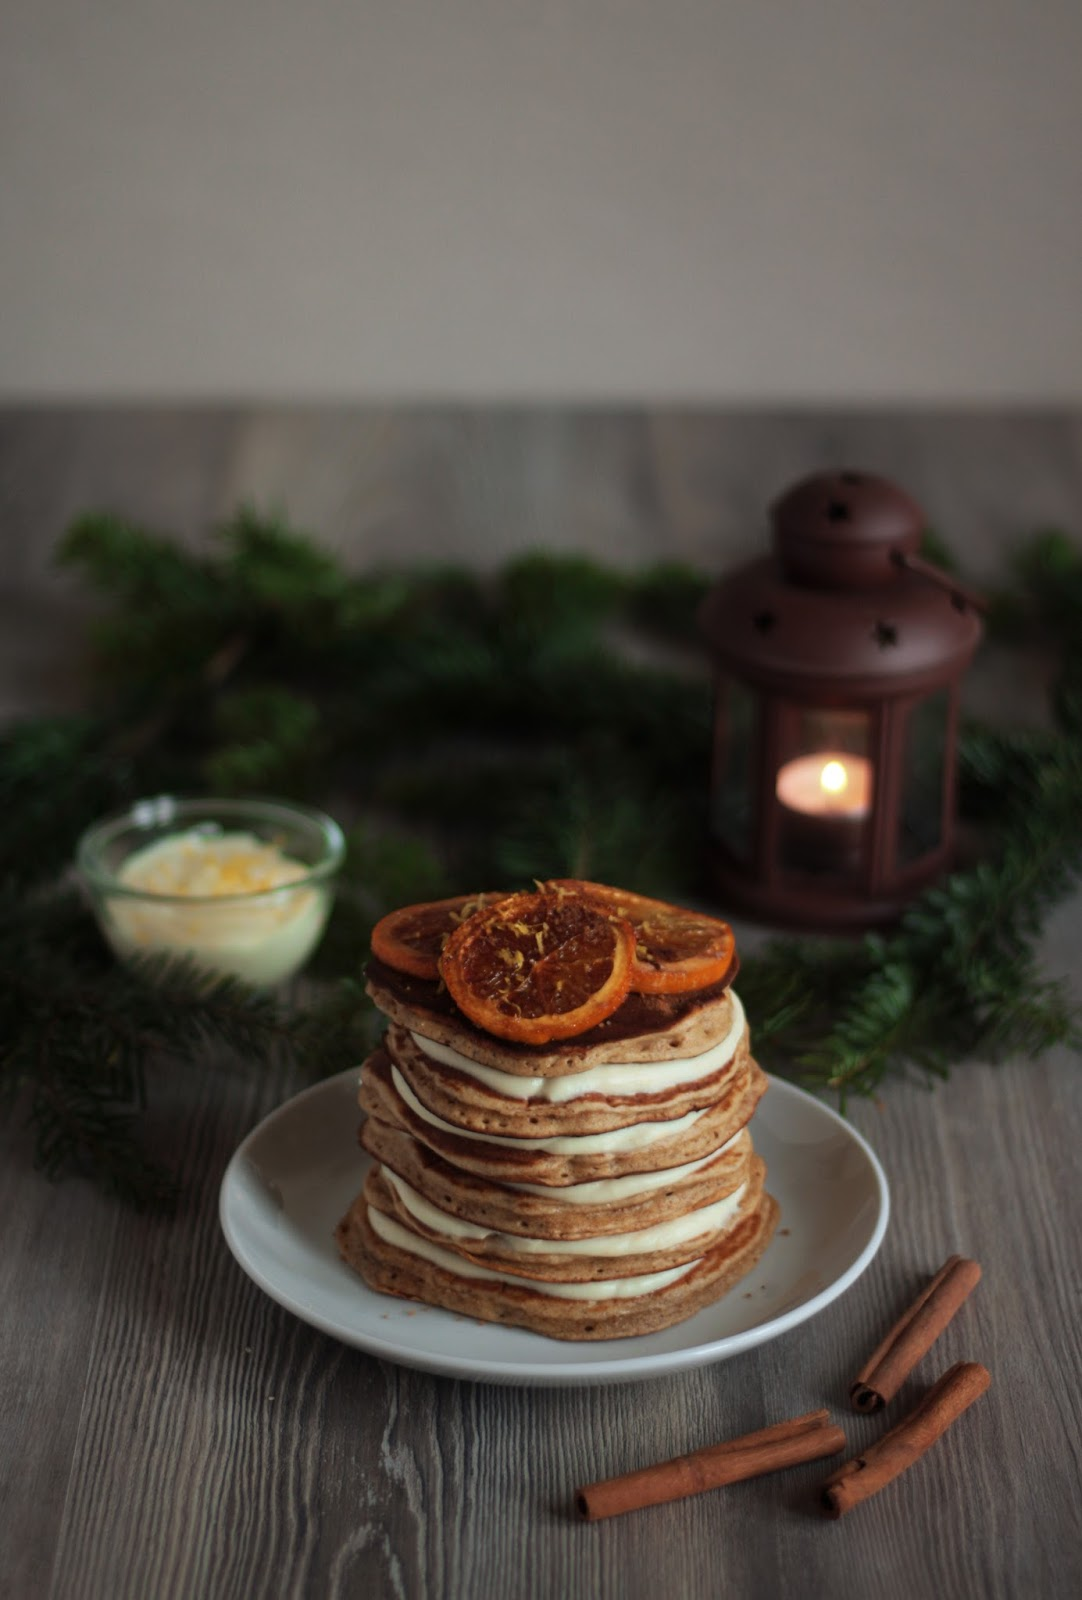 Christmas Orange and Cinnamon Pancakes with White Chocolate Yoghurt Cream and Lemon Zest - recipe brought to you by Pancake Stories.